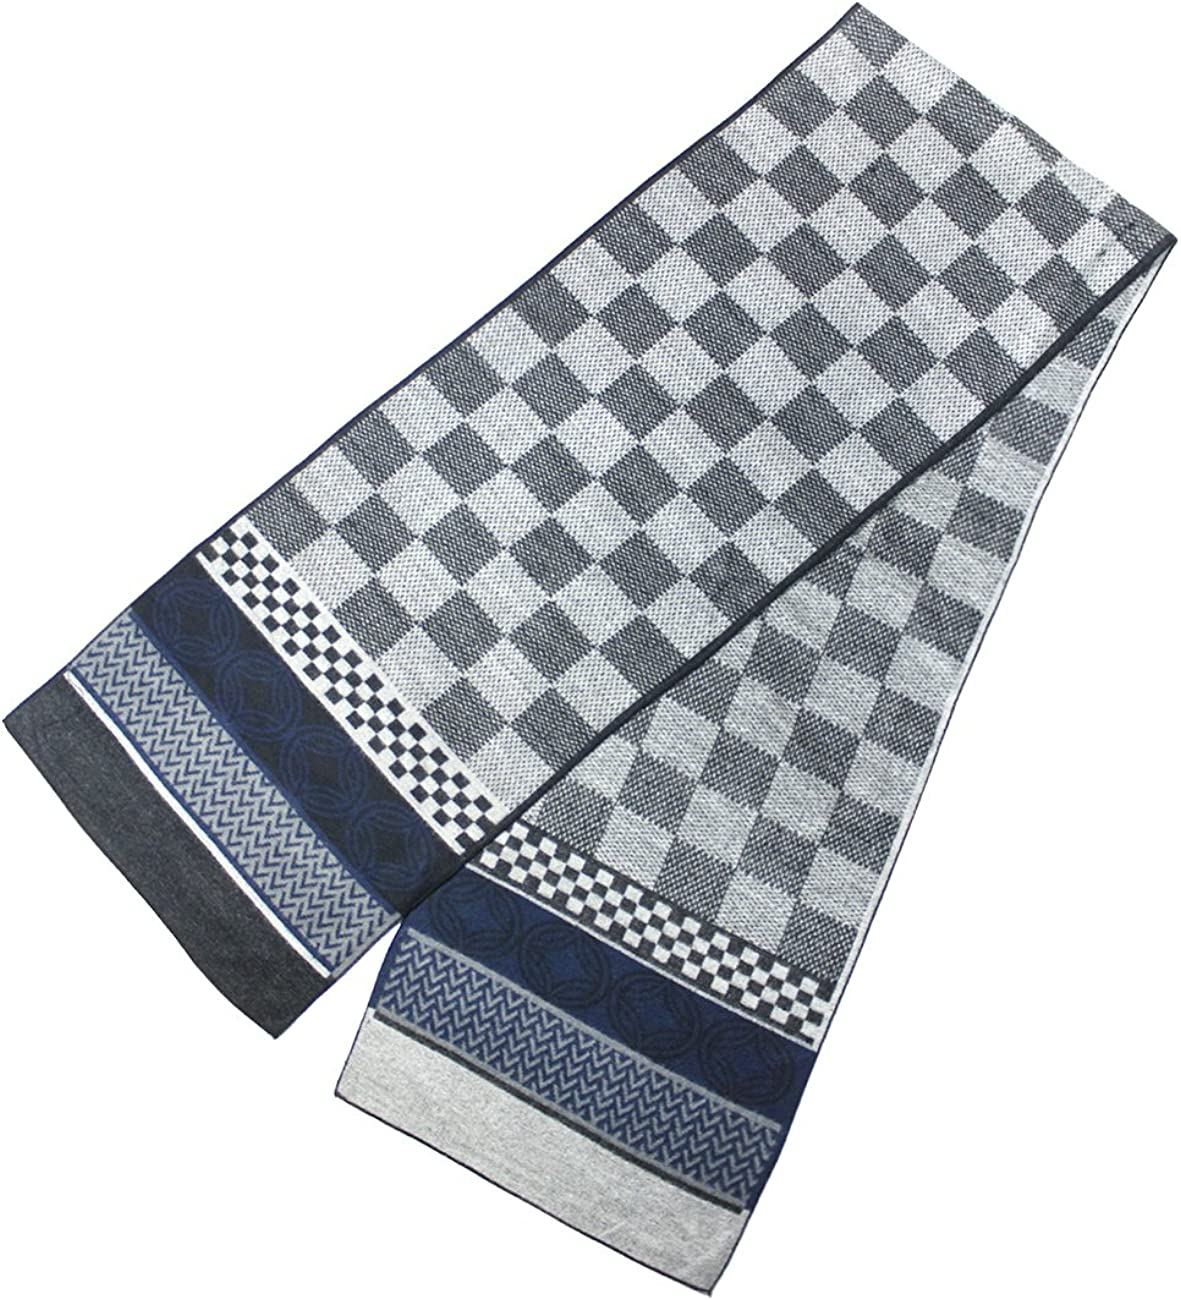 Dahlia Mens Winter Scarf - Rayon, Cashmere Feel Scarf - Large Checkers, Gray